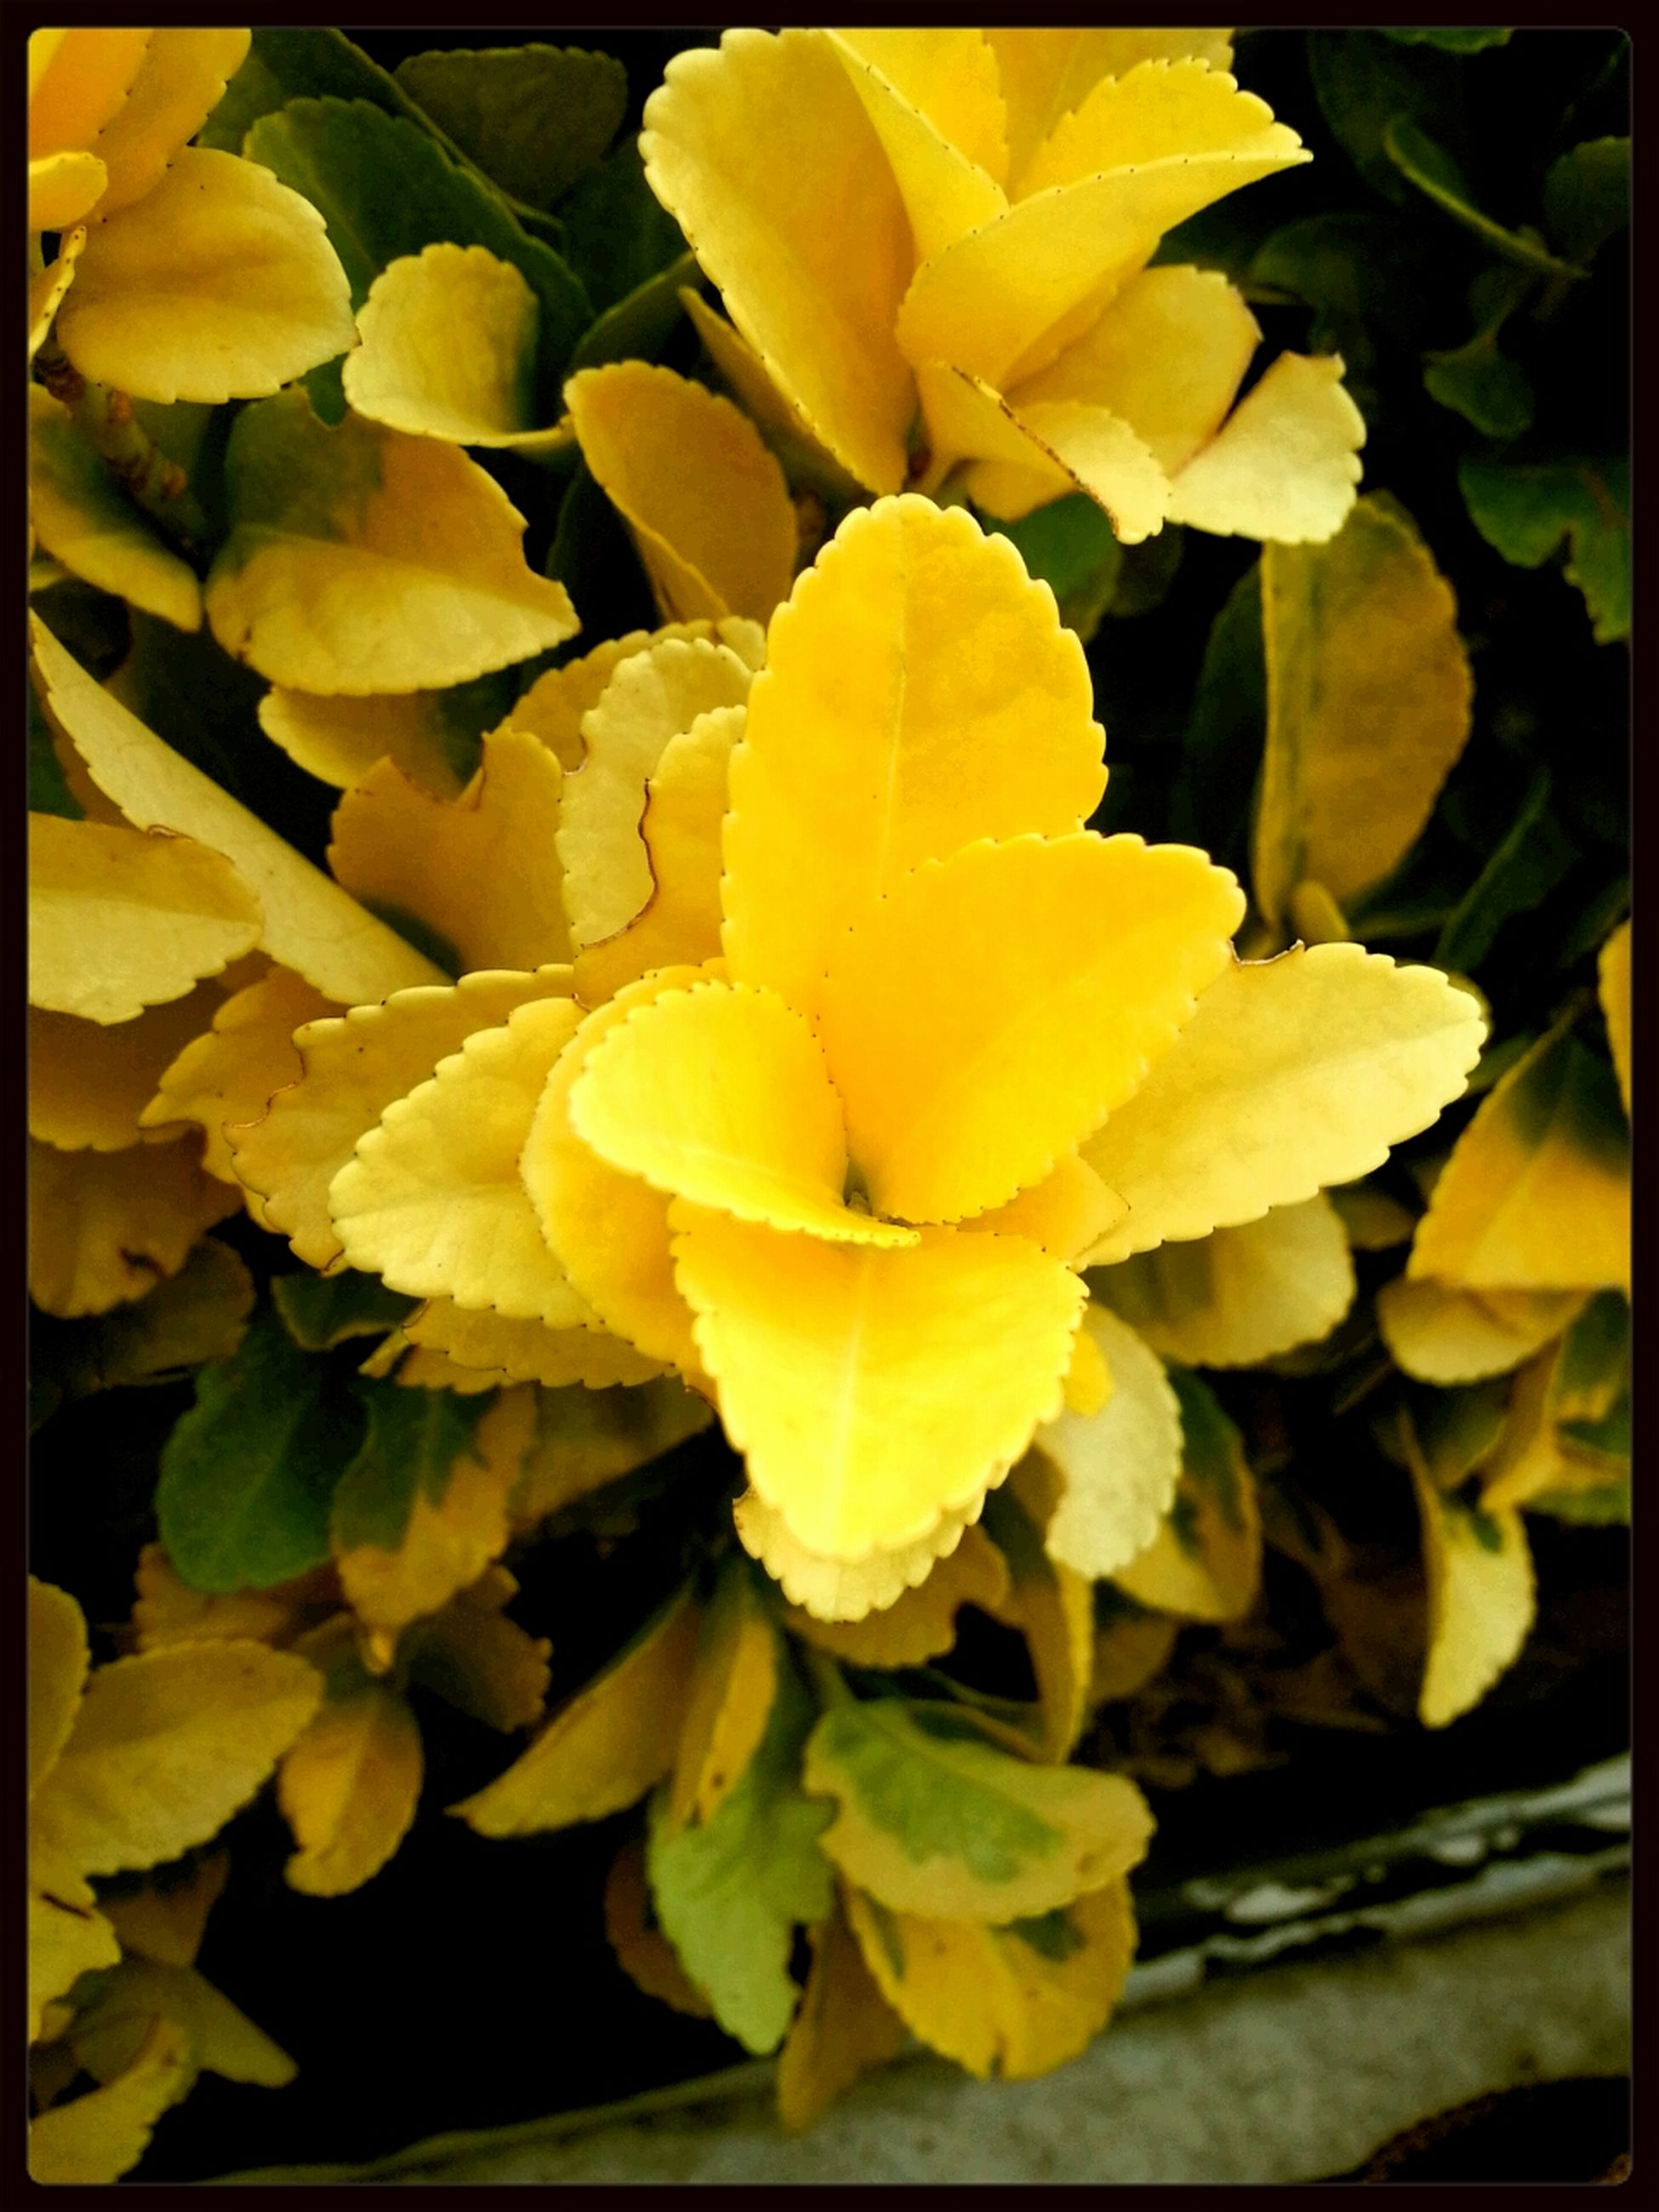 flower, yellow, petal, freshness, fragility, flower head, growth, transfer print, beauty in nature, close-up, nature, blooming, plant, leaf, auto post production filter, focus on foreground, in bloom, vibrant color, blossom, single flower